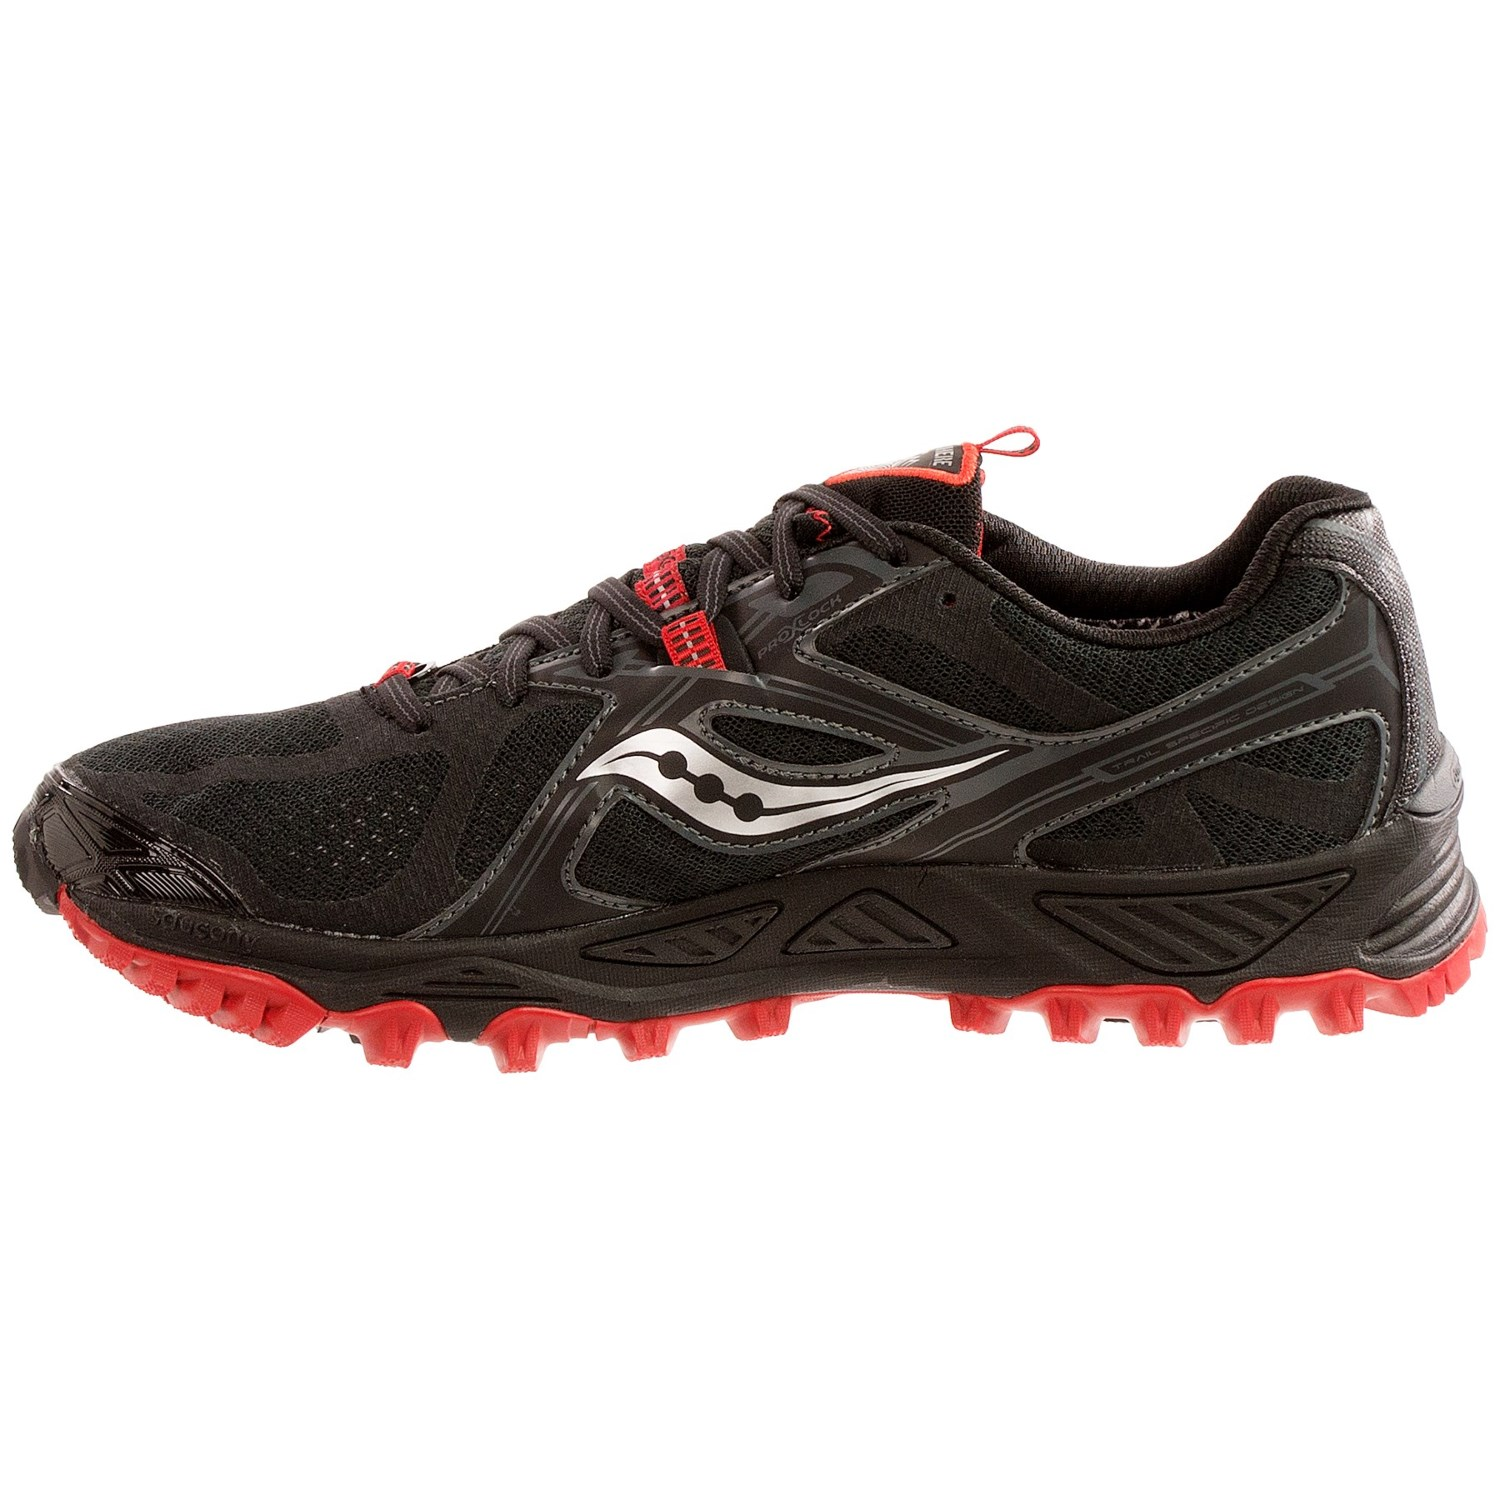 Saucony Xodus   Trail Running Shoes Review